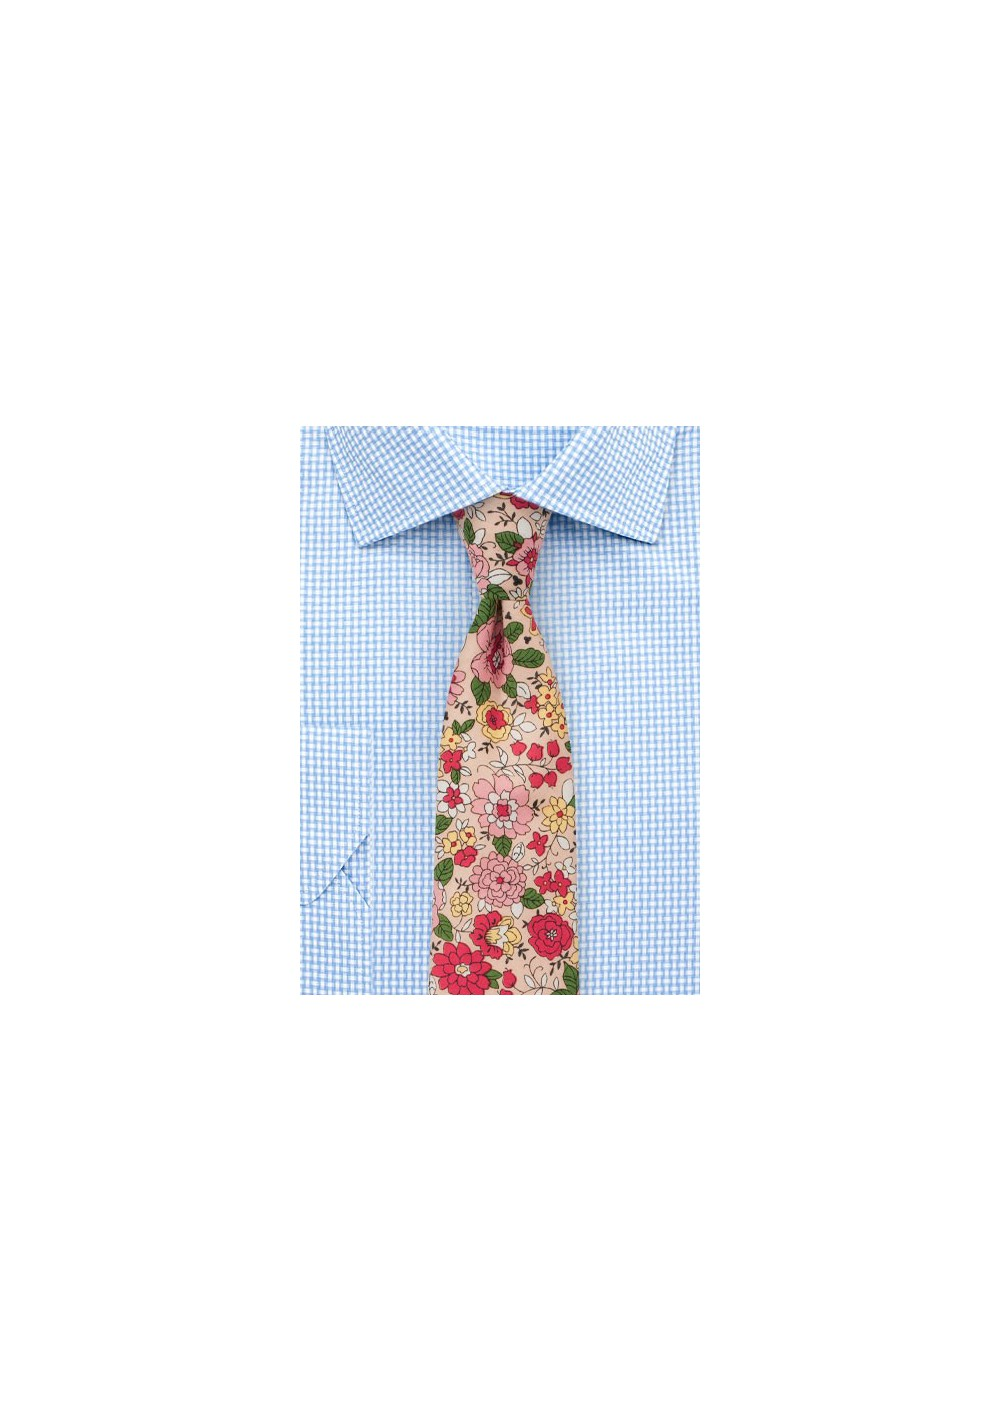 Graphic Floral Print on Finest Cotton